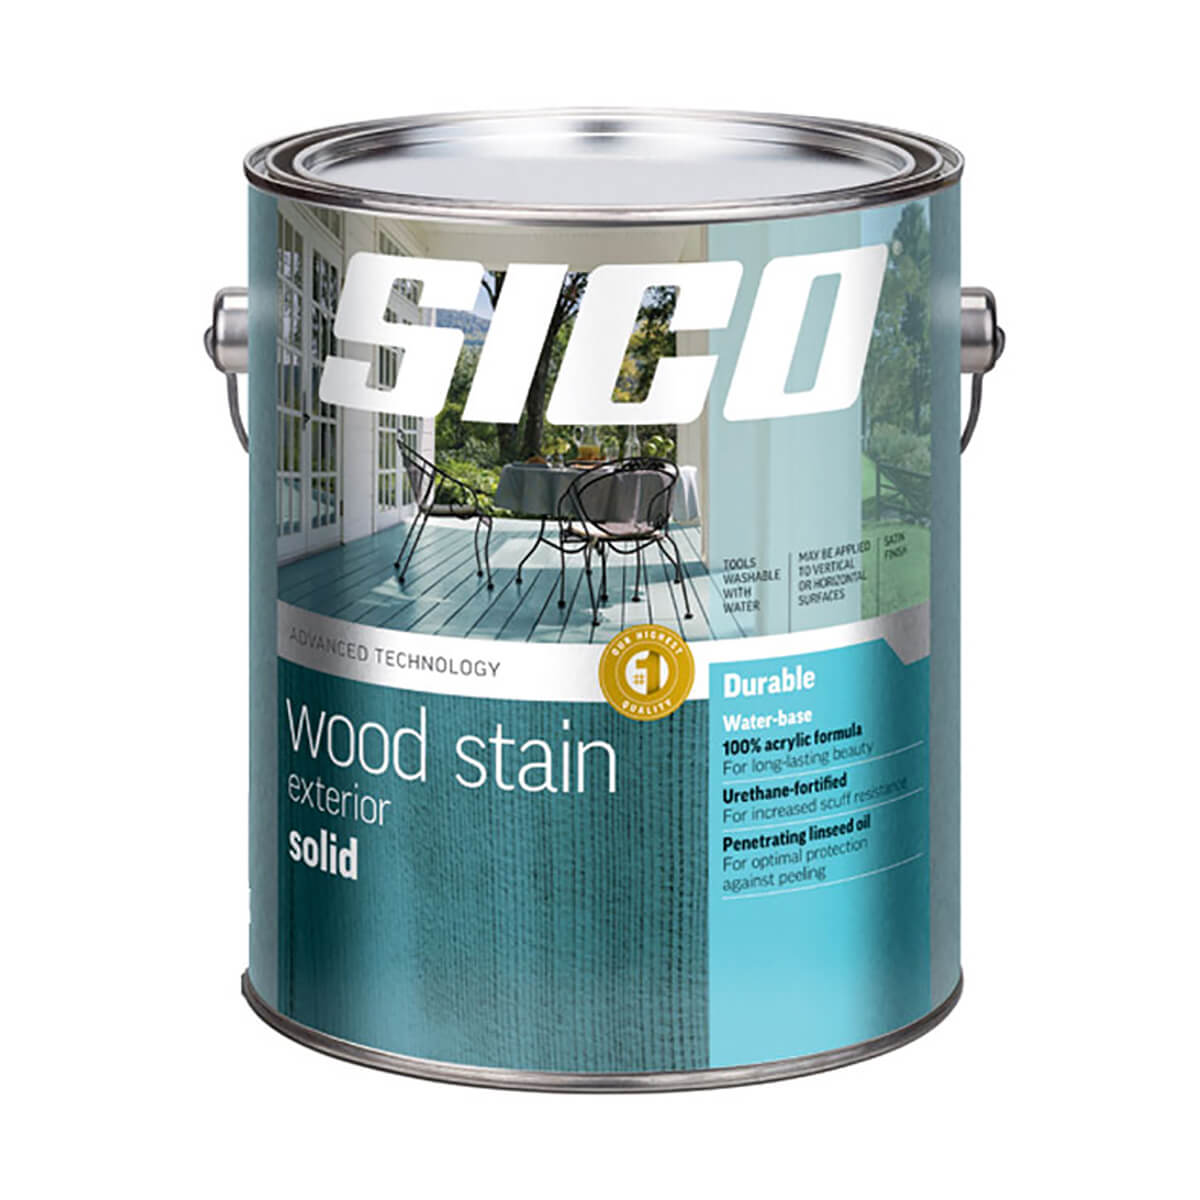 Sico Stain - Exterior Wood Stain 232-503 - 17.5 L